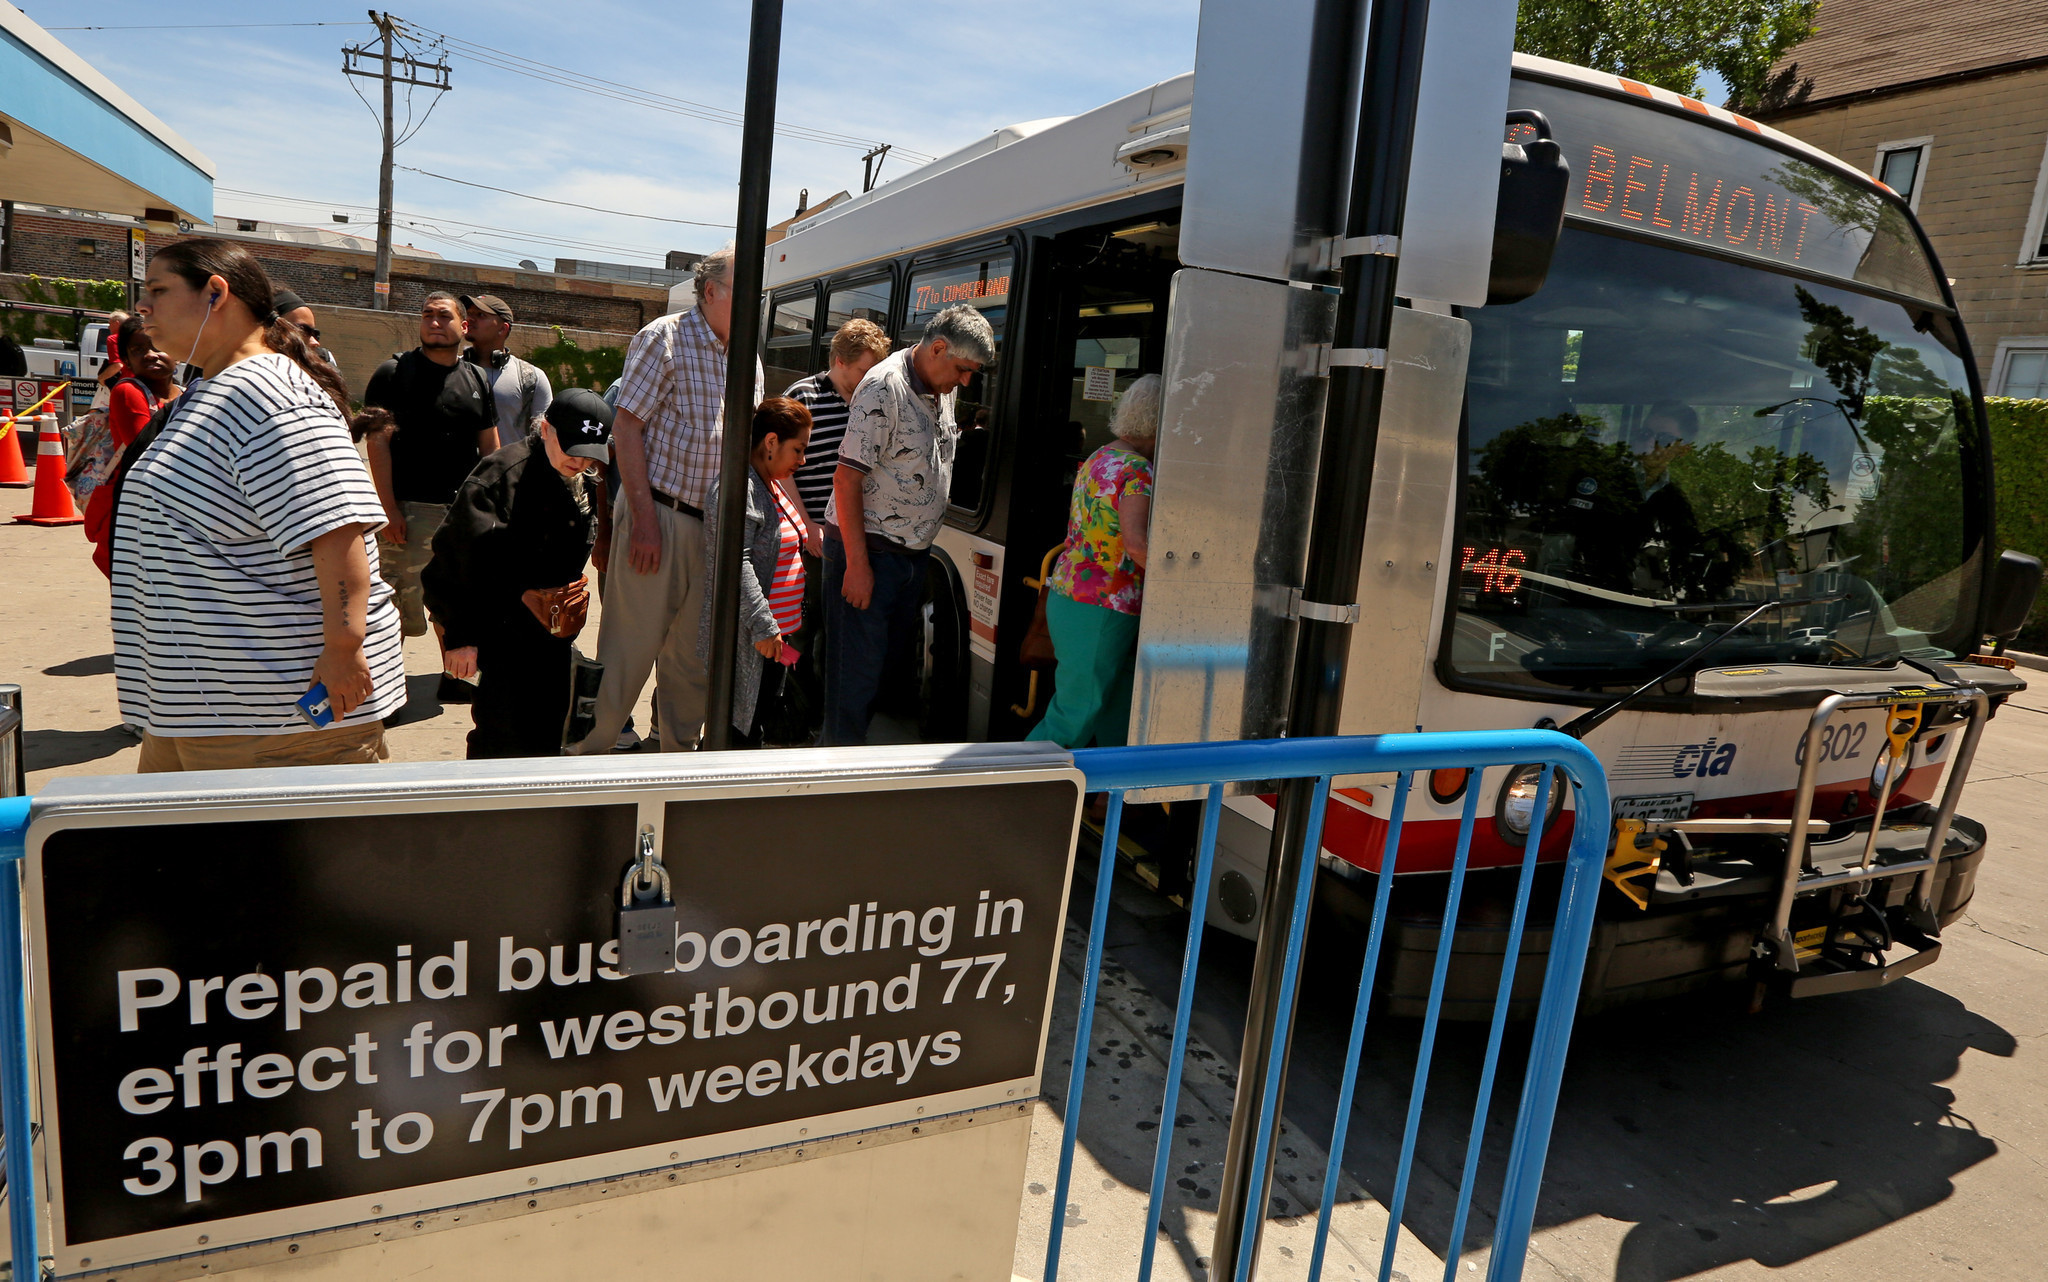 Cta To Test Prepaid Boarding On Belmont Buses Chicago